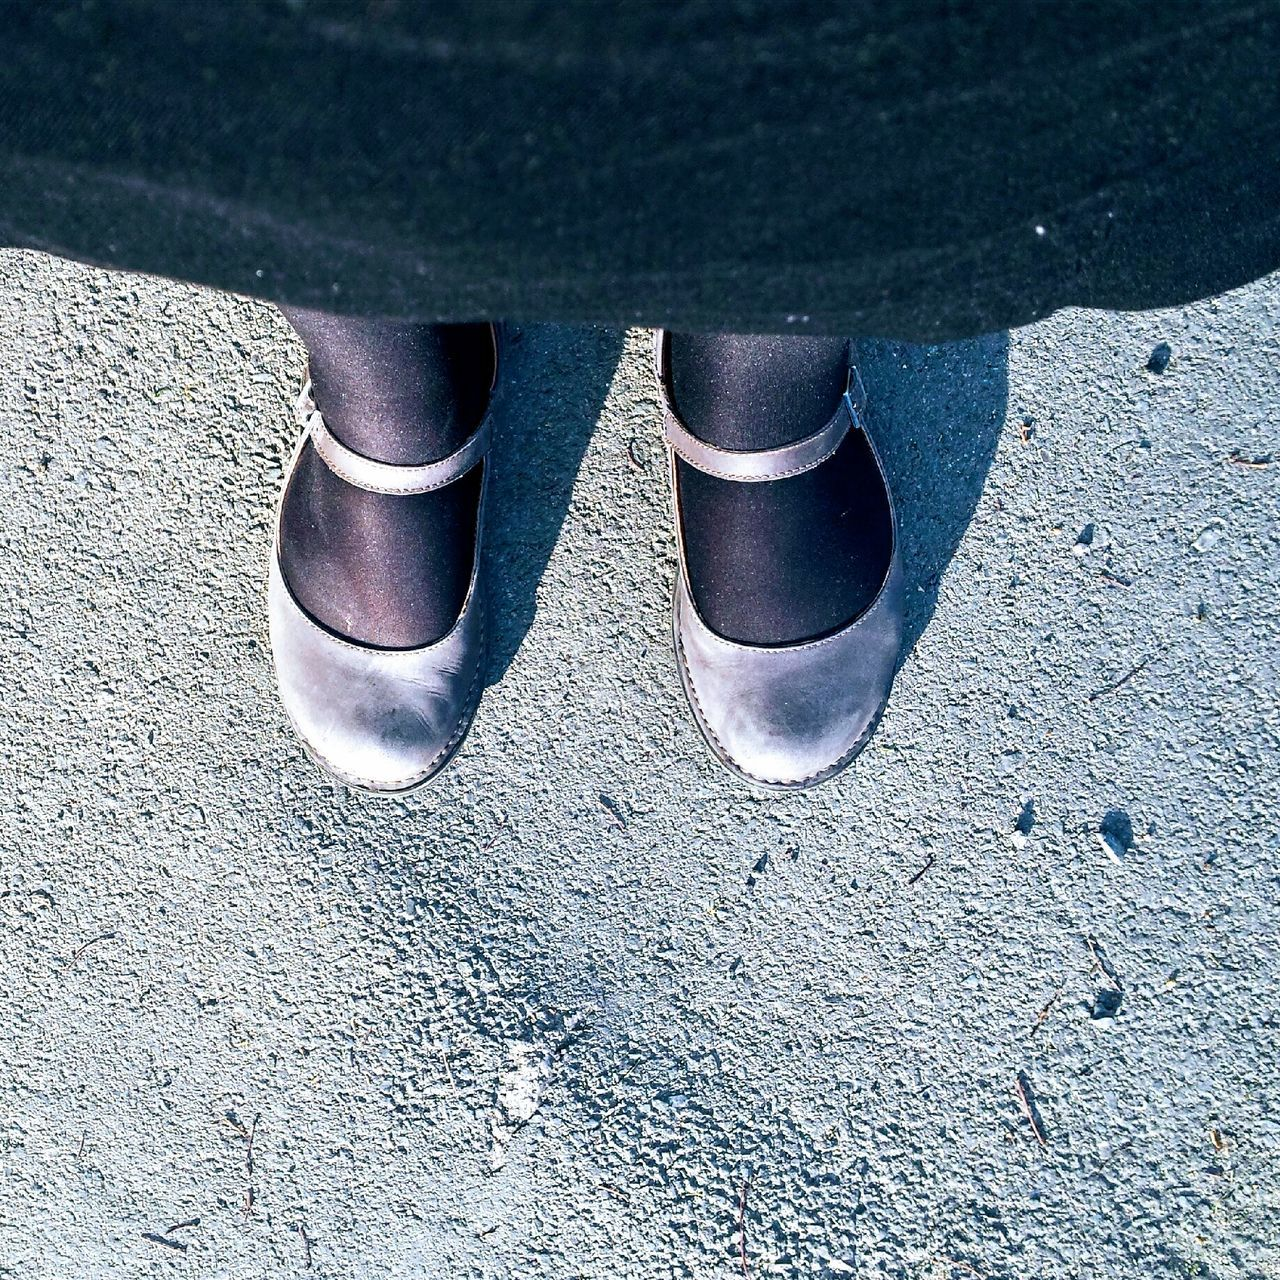 shoe, pair, low section, high angle view, day, outdoors, standing, no people, close-up